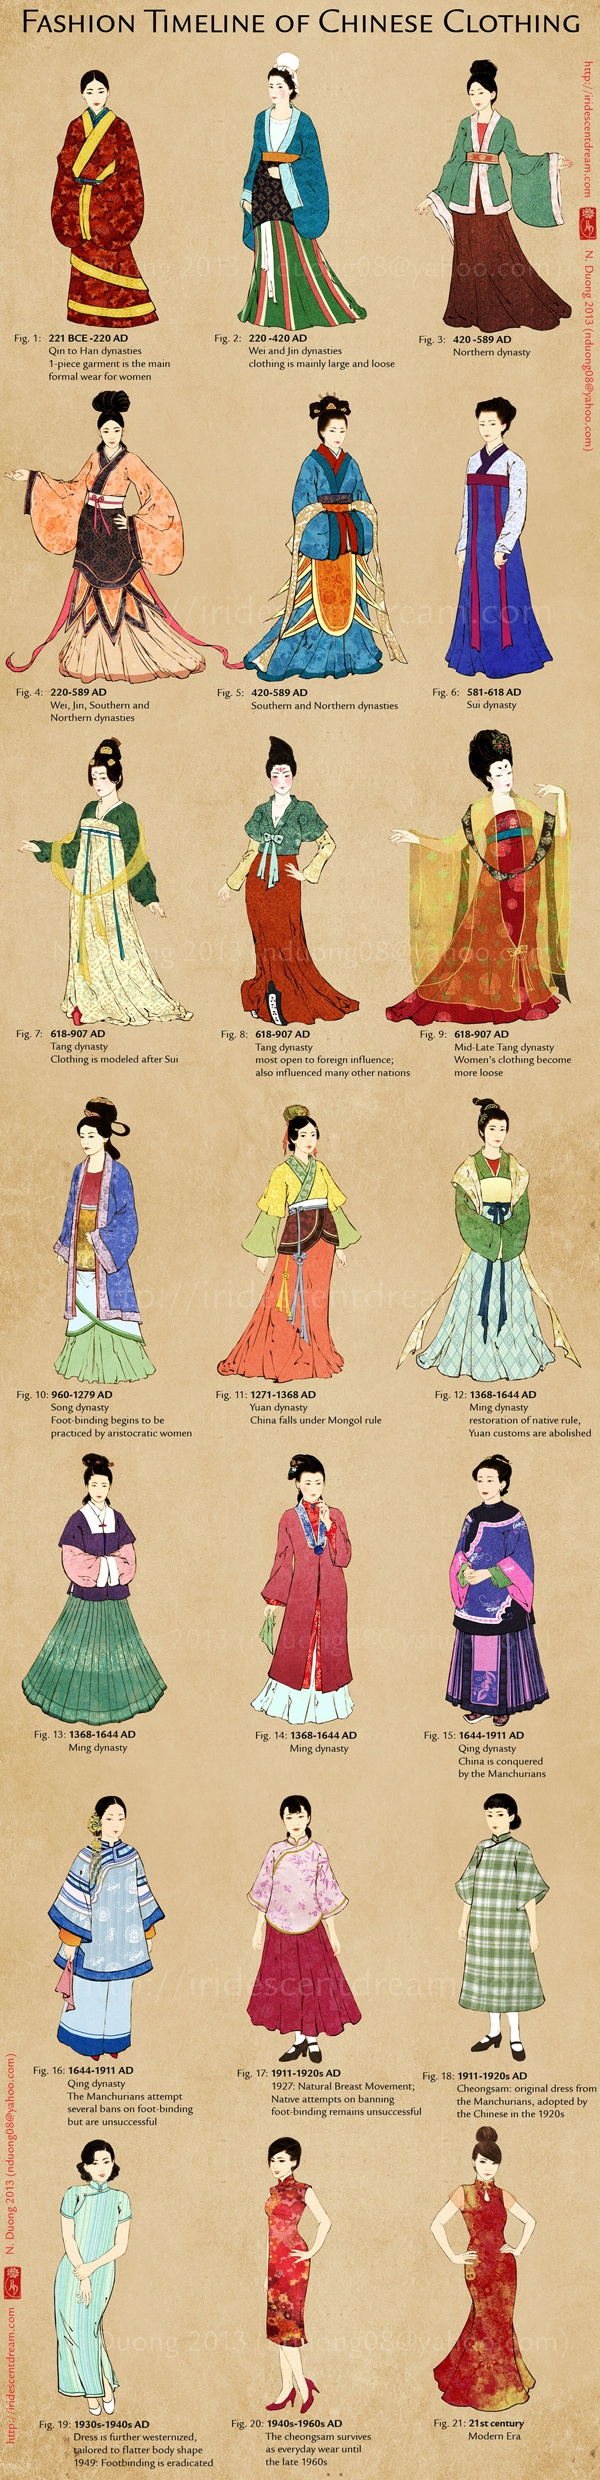 Chinese dynasty clothing timeline!  I've been looking for something like this!